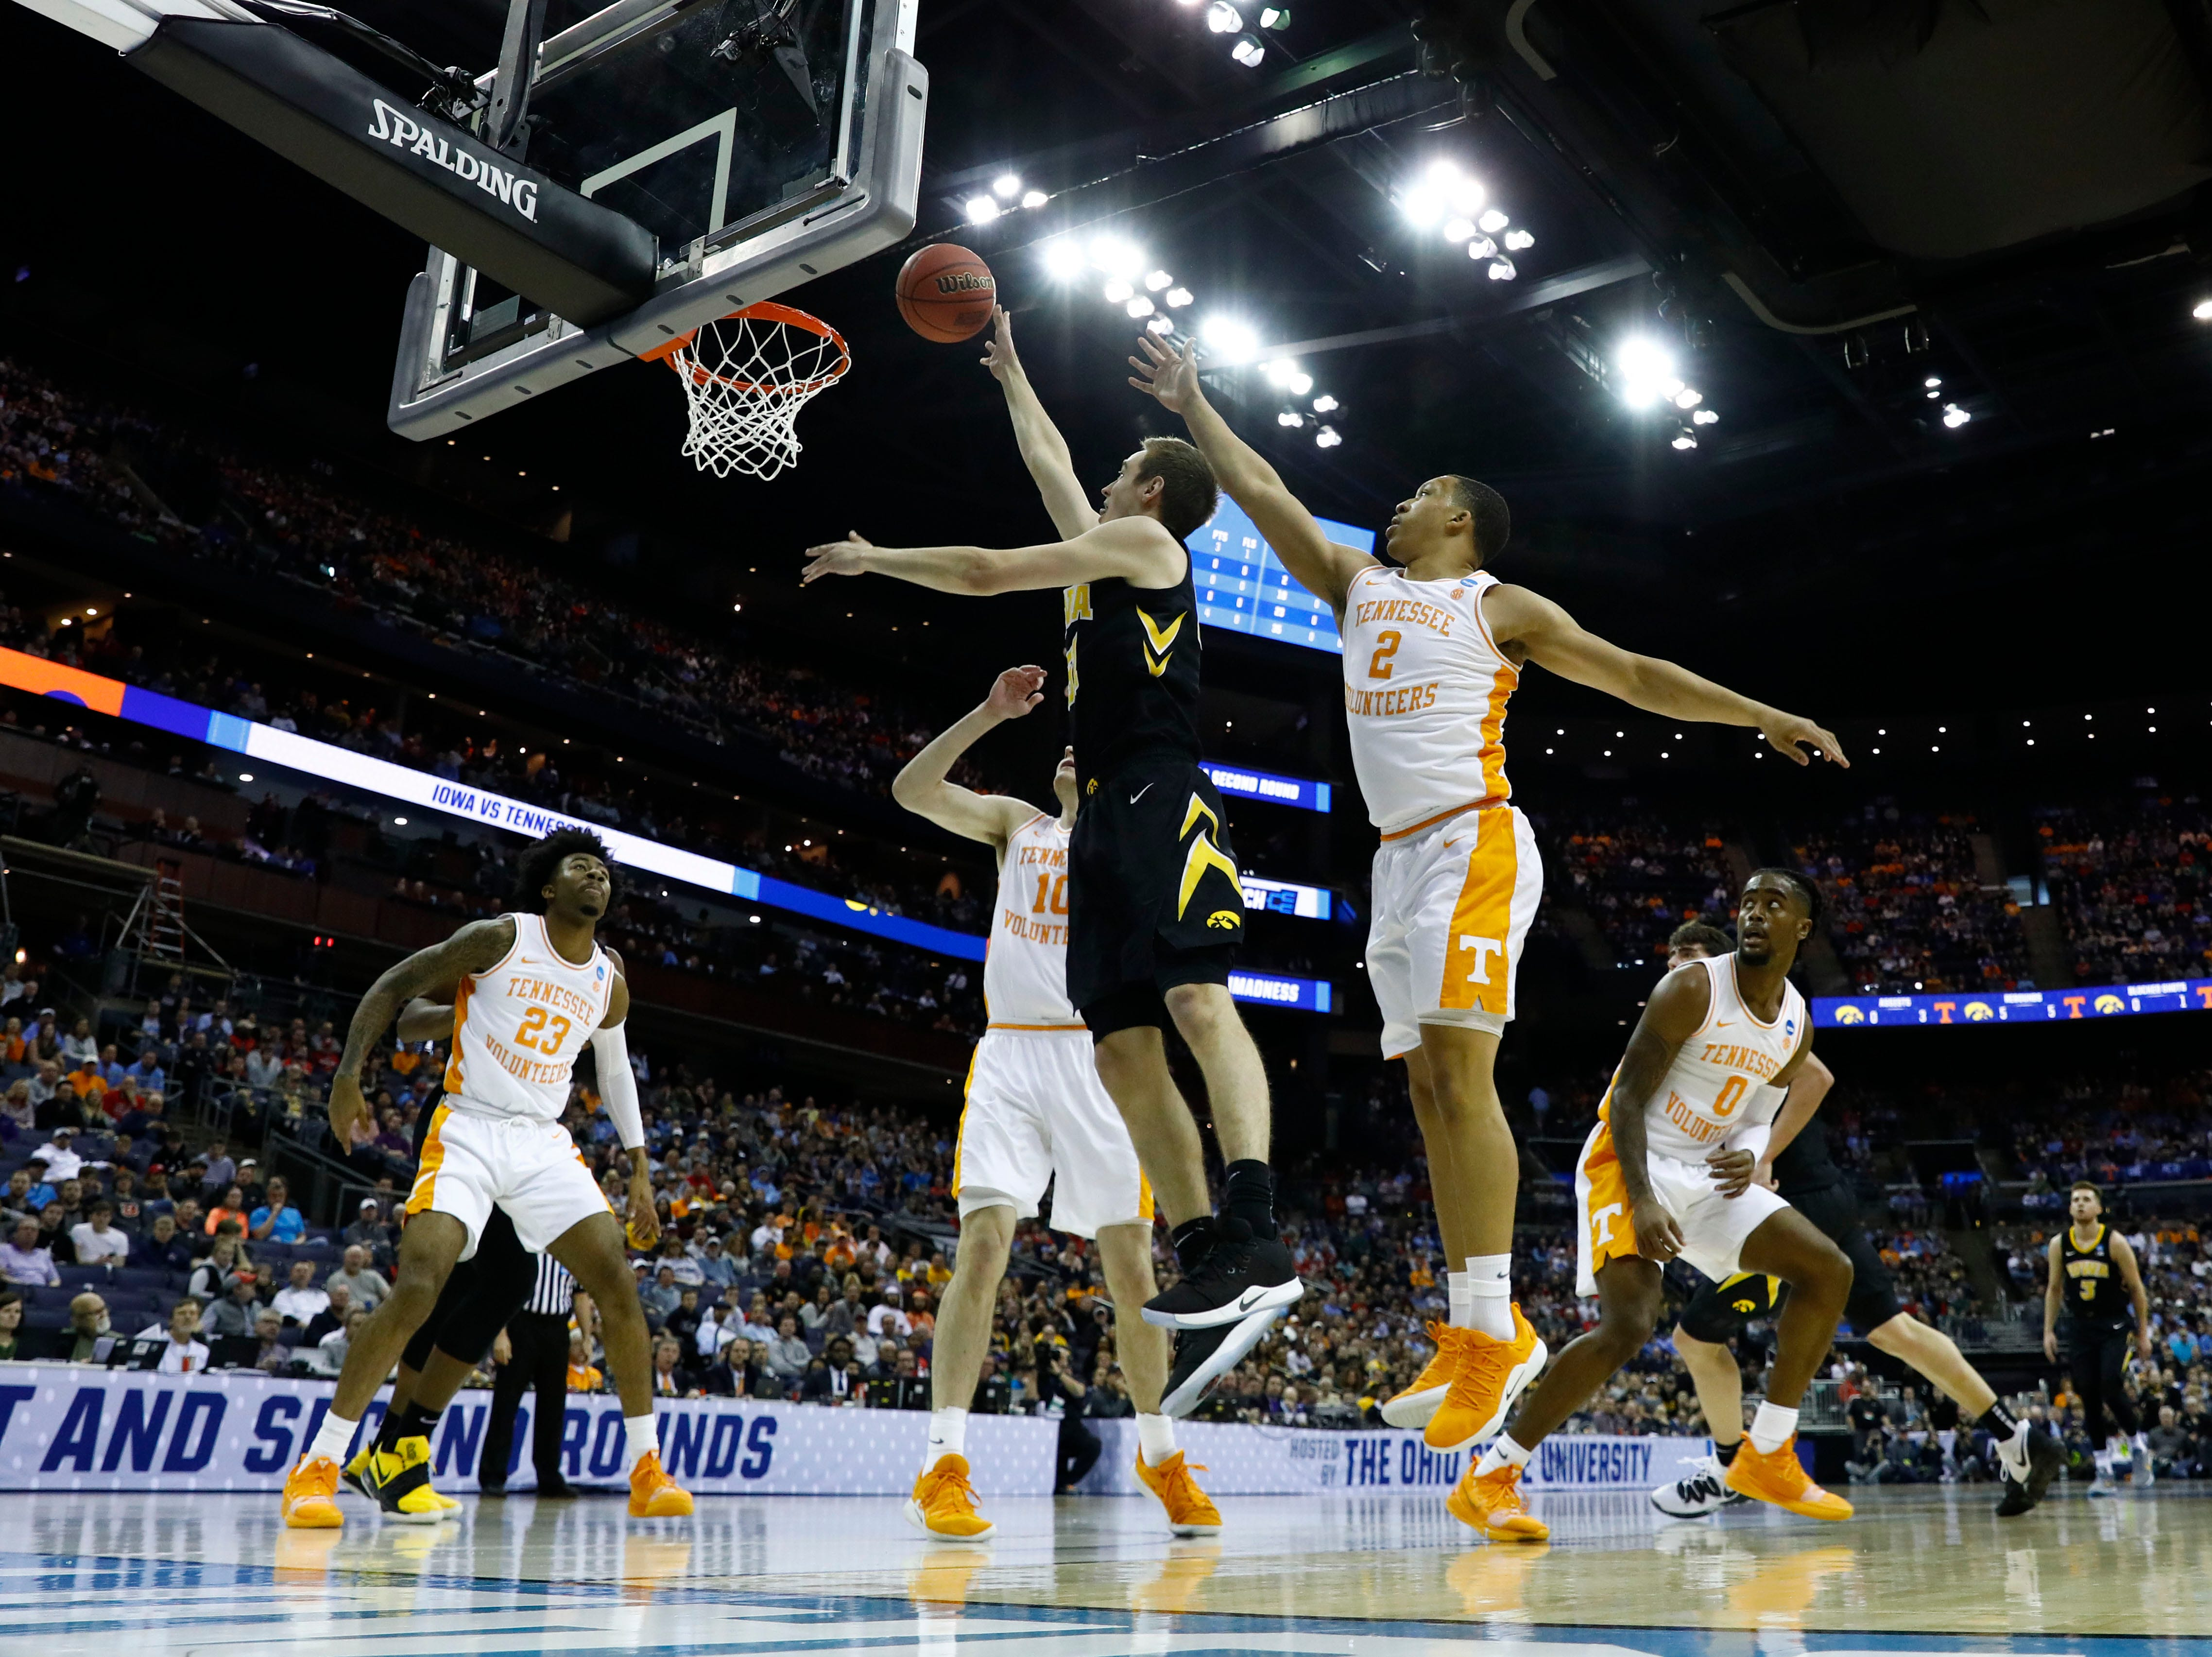 Iowa Hawkeyes forward Nicholas Baer (51) goes to the basket defended by Tennessee Volunteers guard Jordan Bone (0) in the first half in the second round of the 2019 NCAA Tournament at Nationwide Arena.